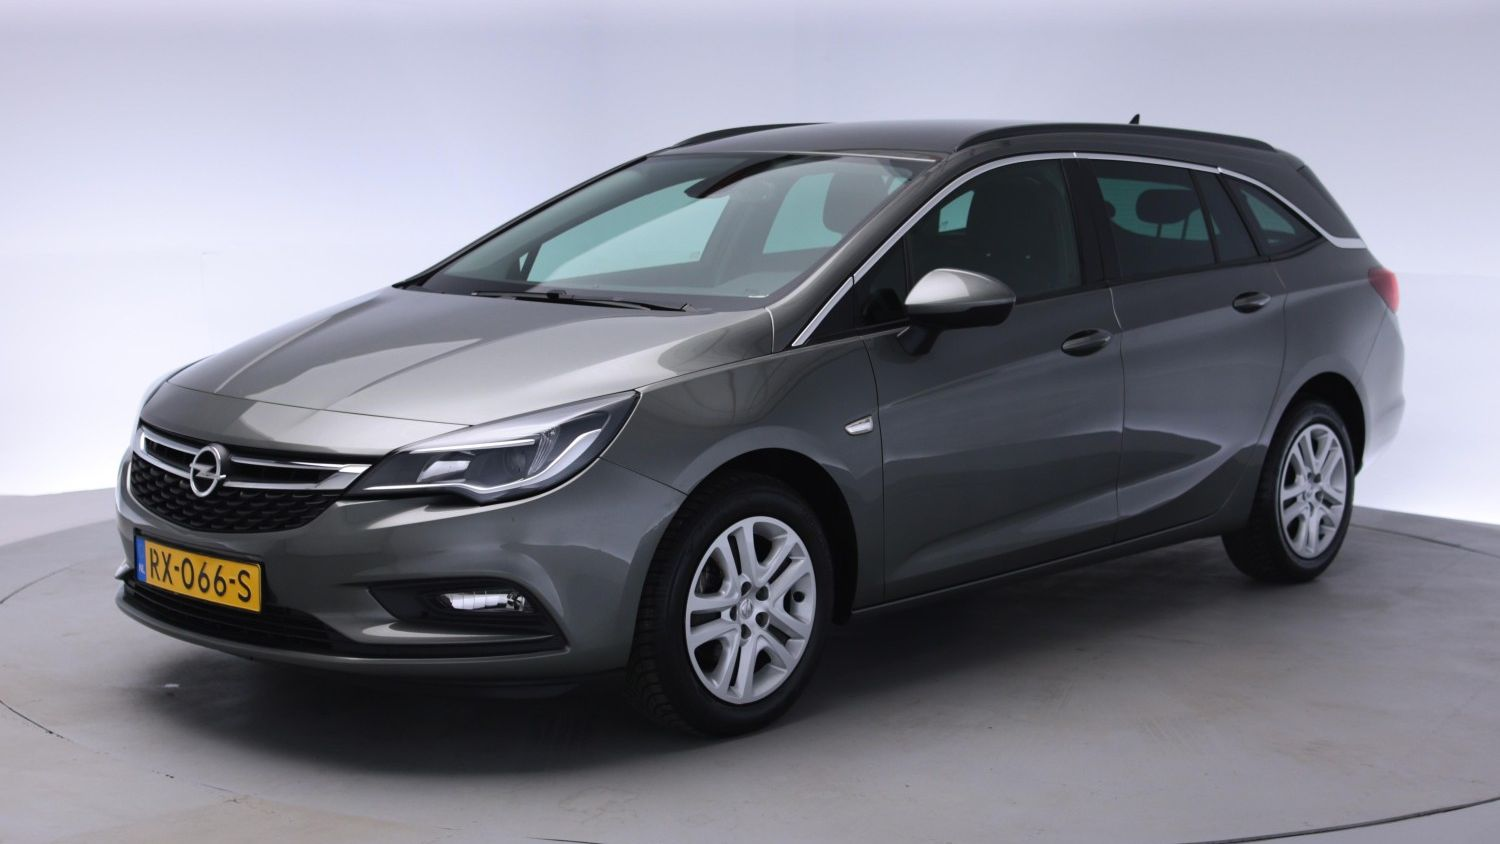 Opel Astra Station 2018 RX-066-S 1